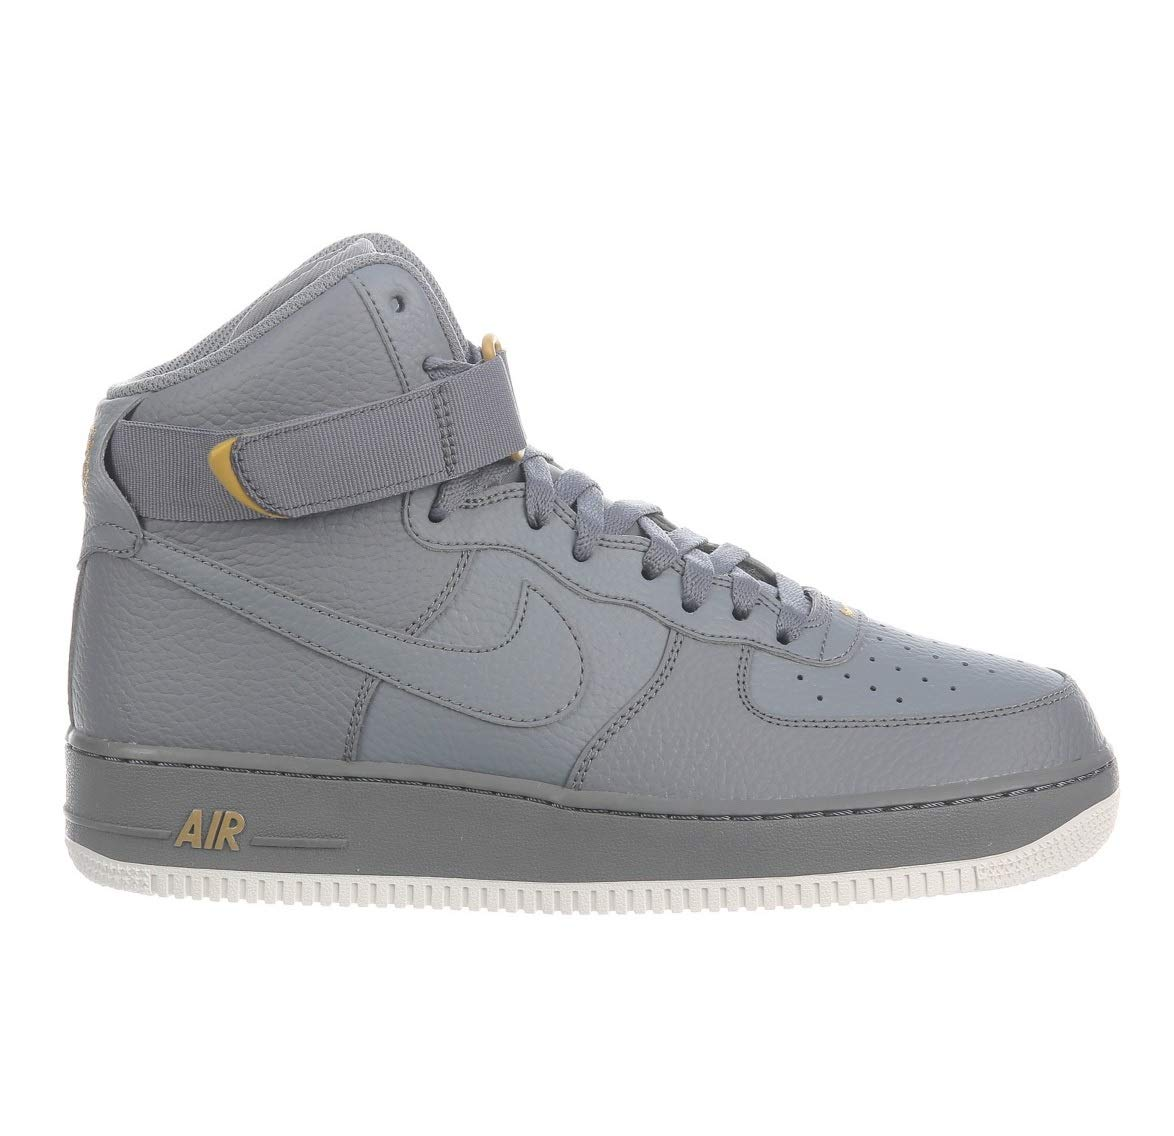 412069e9ec245 Galleon - Nike Mens Air Force 1 High 07 Basketball Shoes Cool Grey/Summit  White 315121-049 Size 11.5